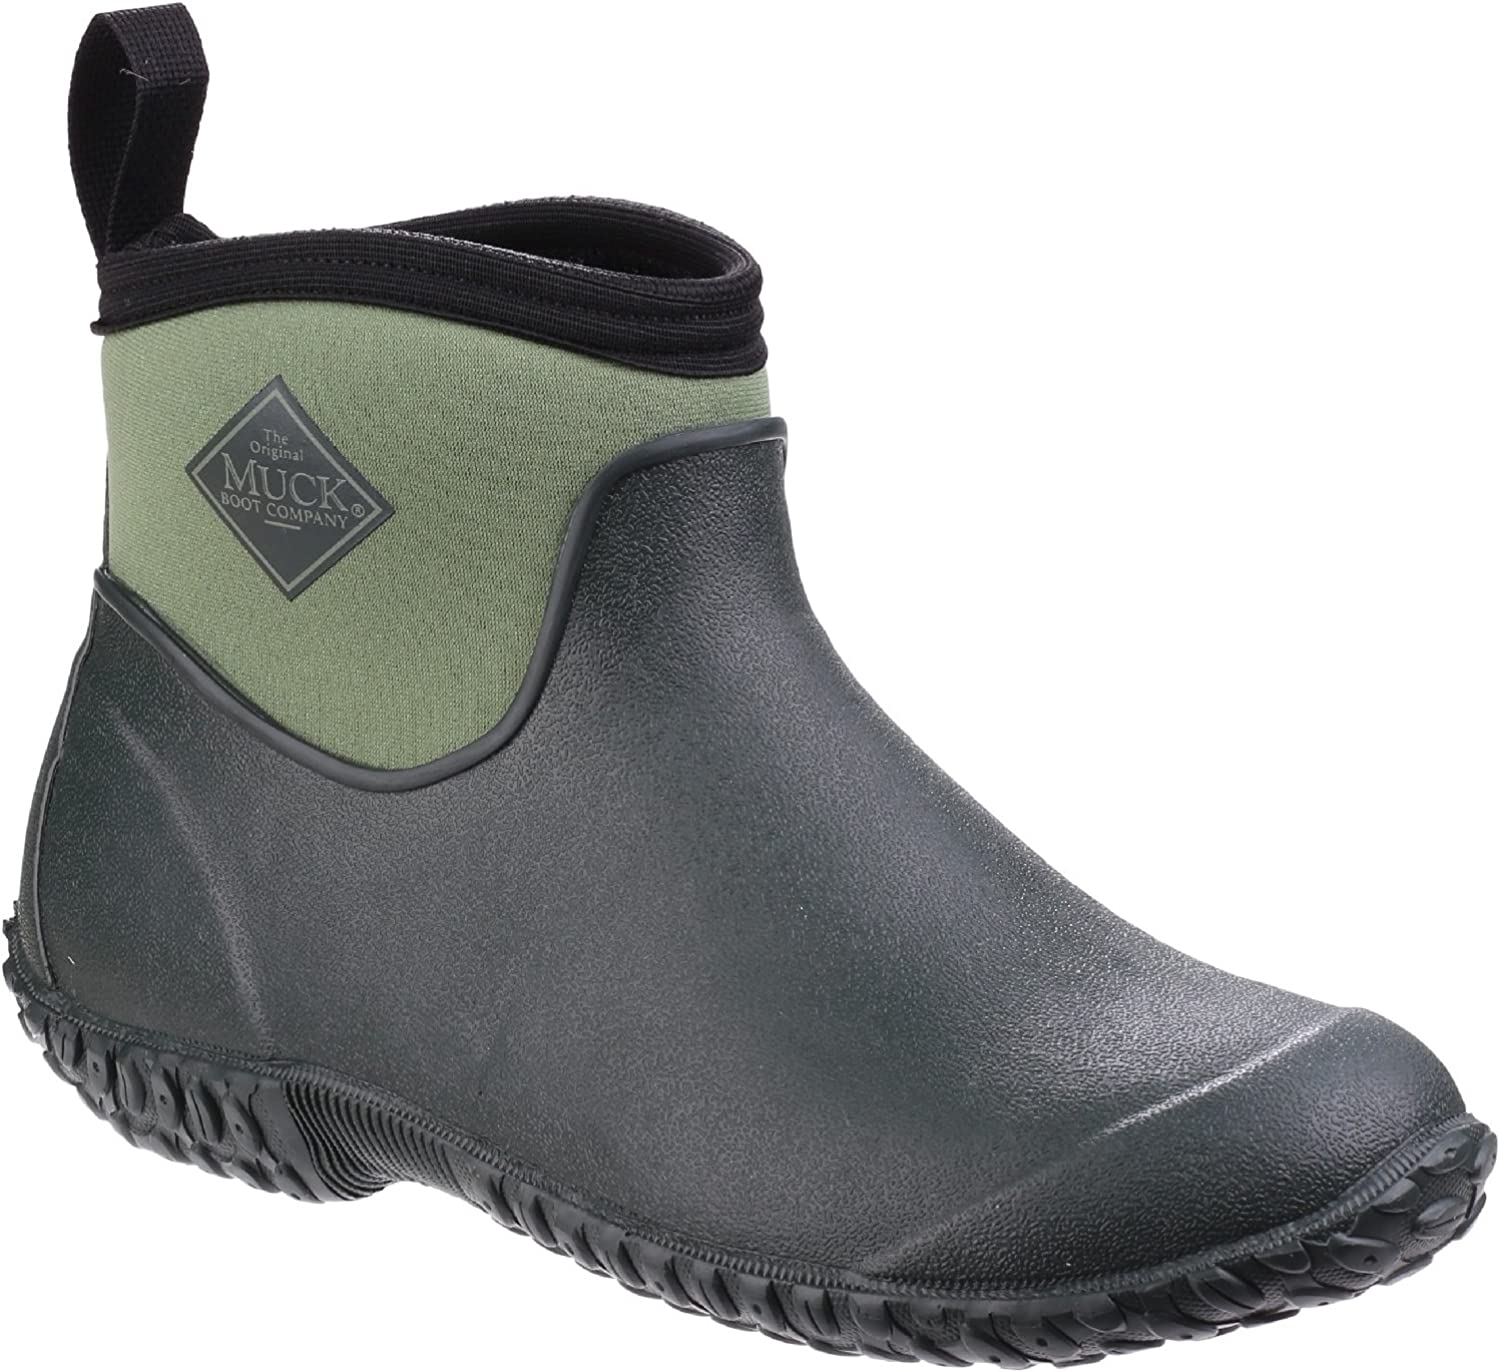 Muck Boots Womens Ladies Muckster II Ankle All-Purpose Lightweight shoes